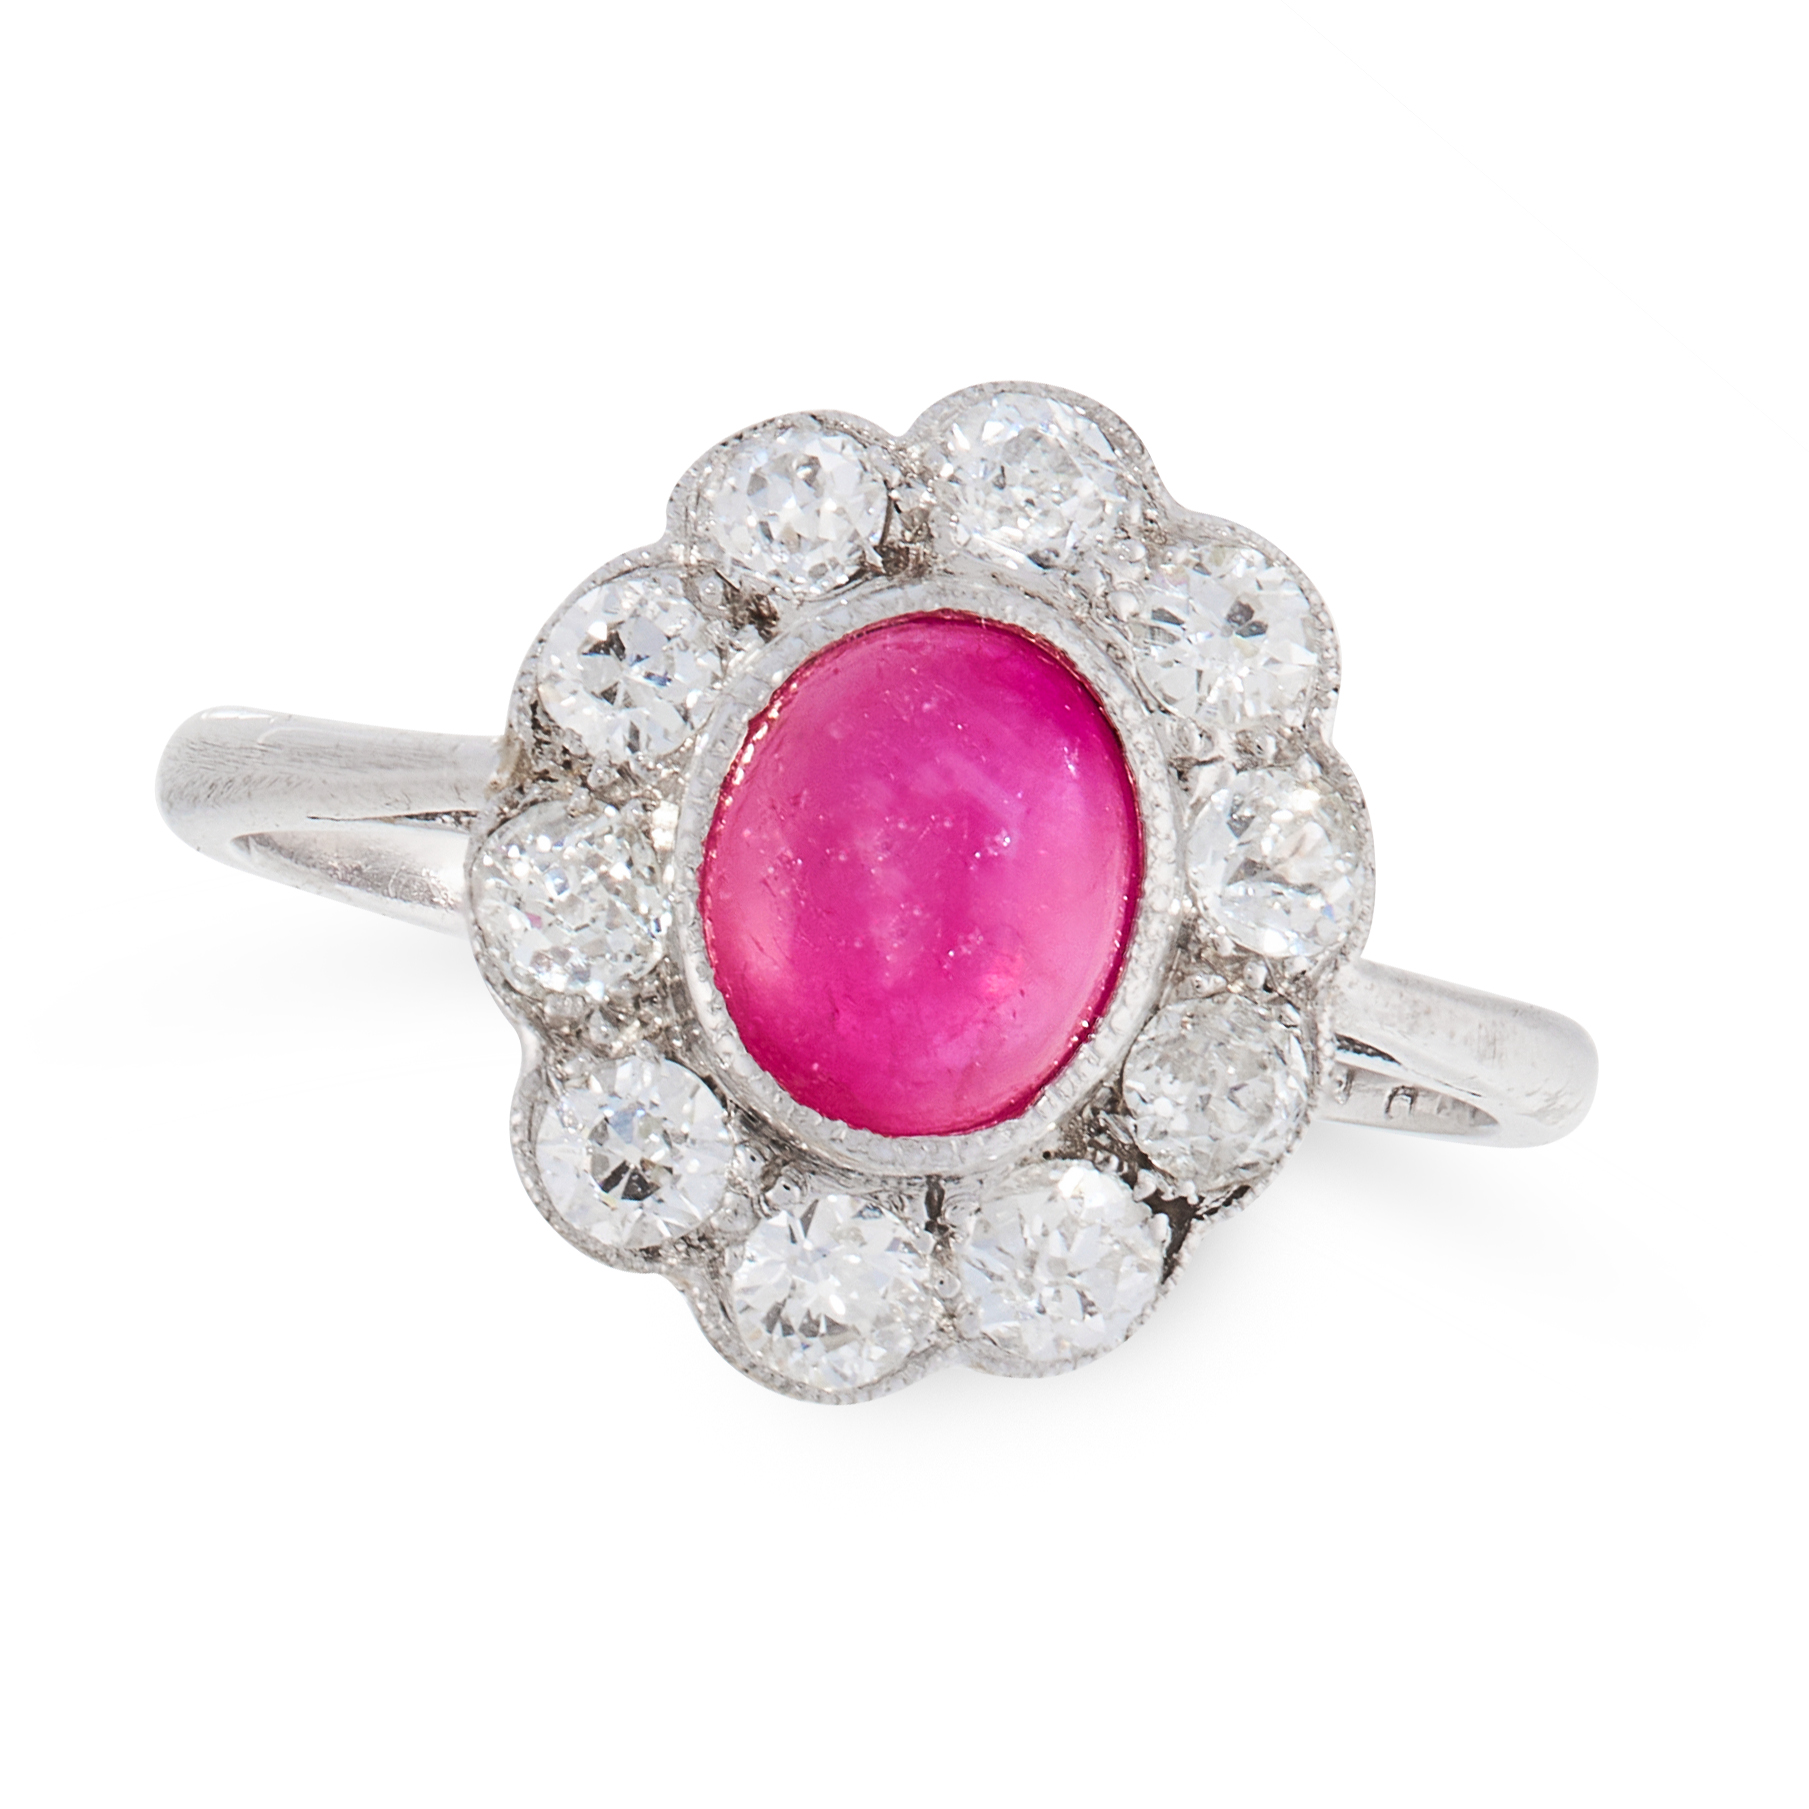 A VINTAGE RUBY AND DIAMOND DRESS RING in 18ct white gold, set with an oval cabochon ruby of 1.50